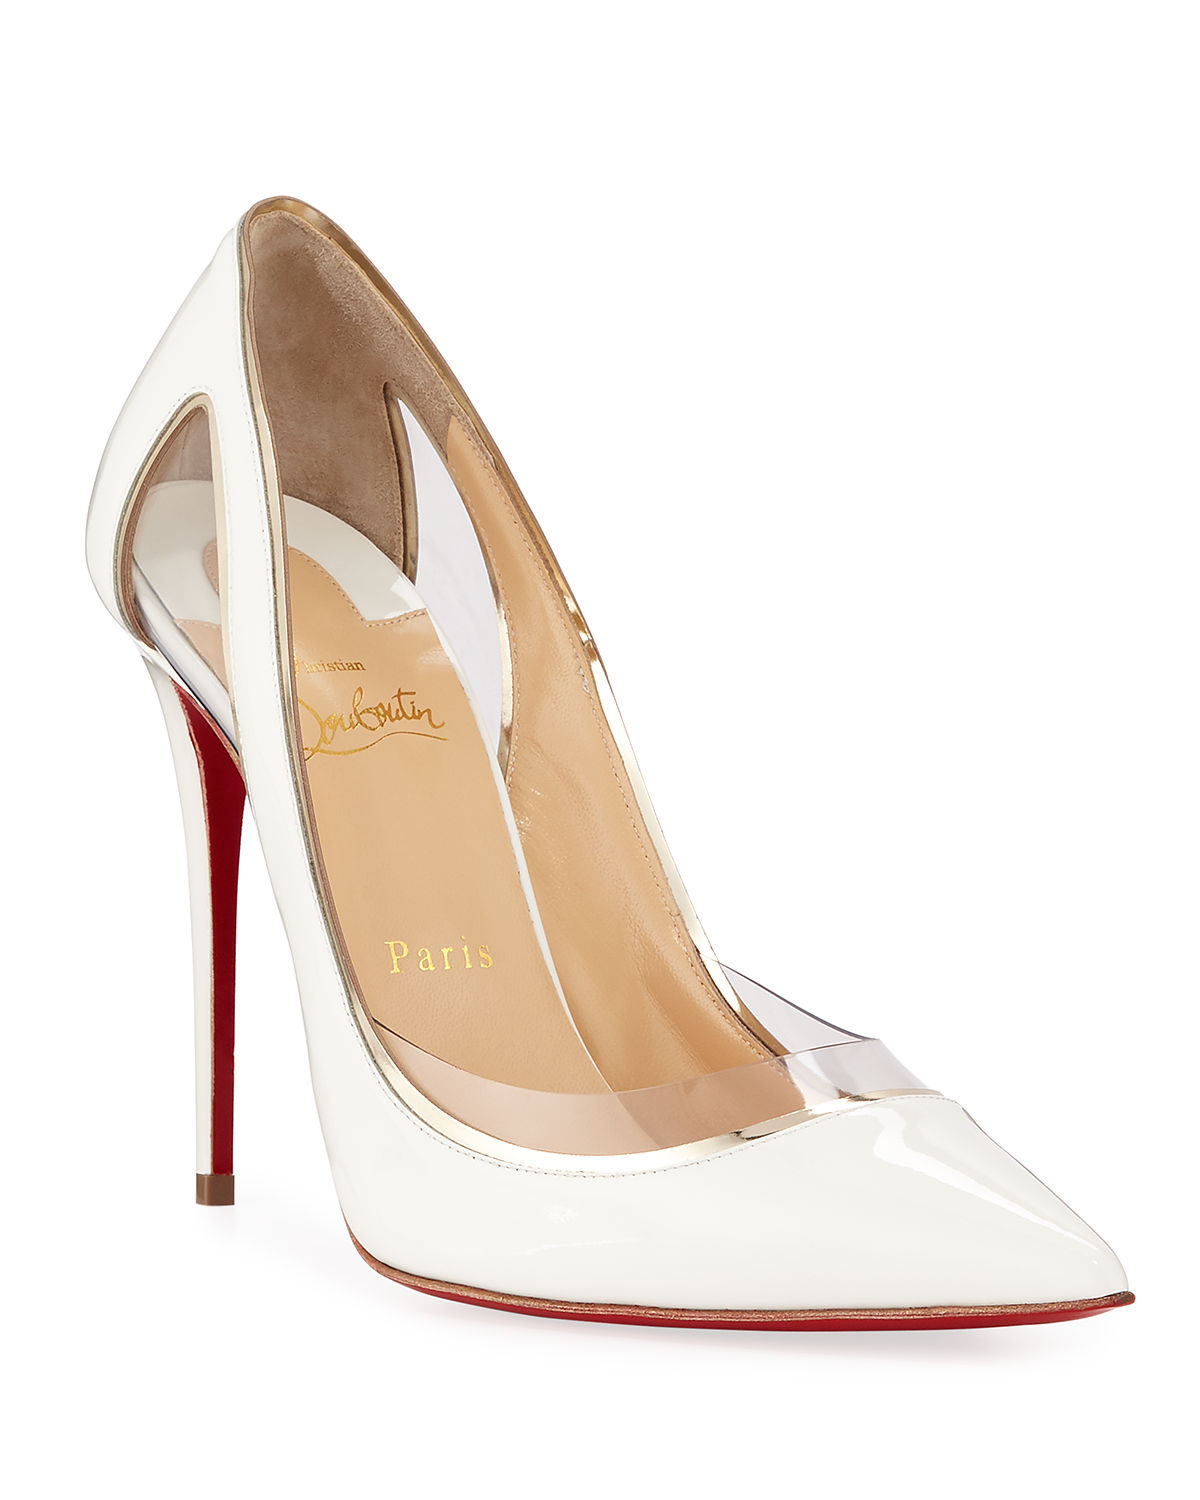 f6a5c2b28f09 Christian Louboutin Cosmo 554 Patent Vinyl High-Heel Red Sole Pumps ...